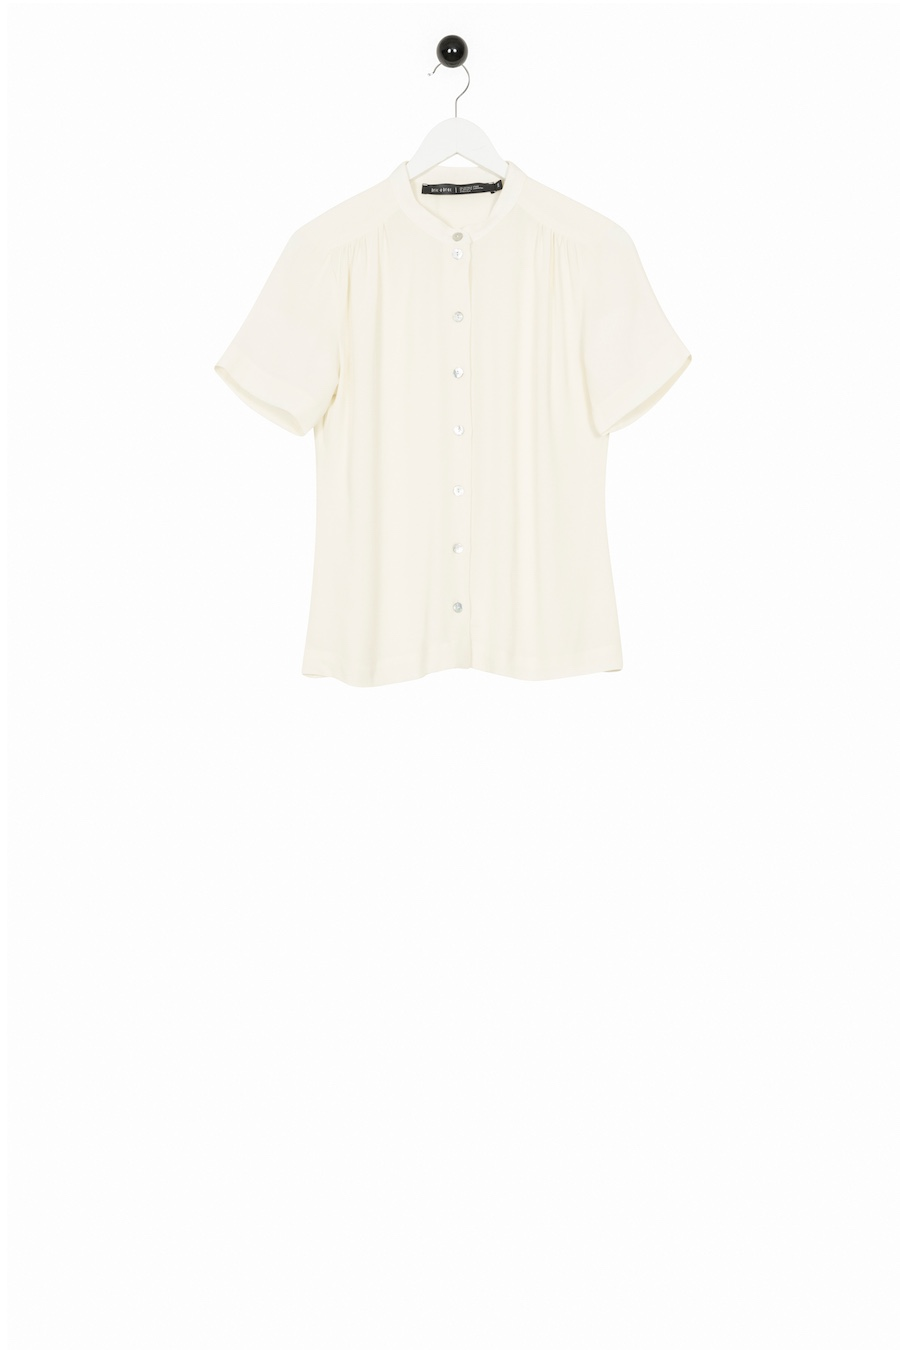 Ebenholts Blouse S S